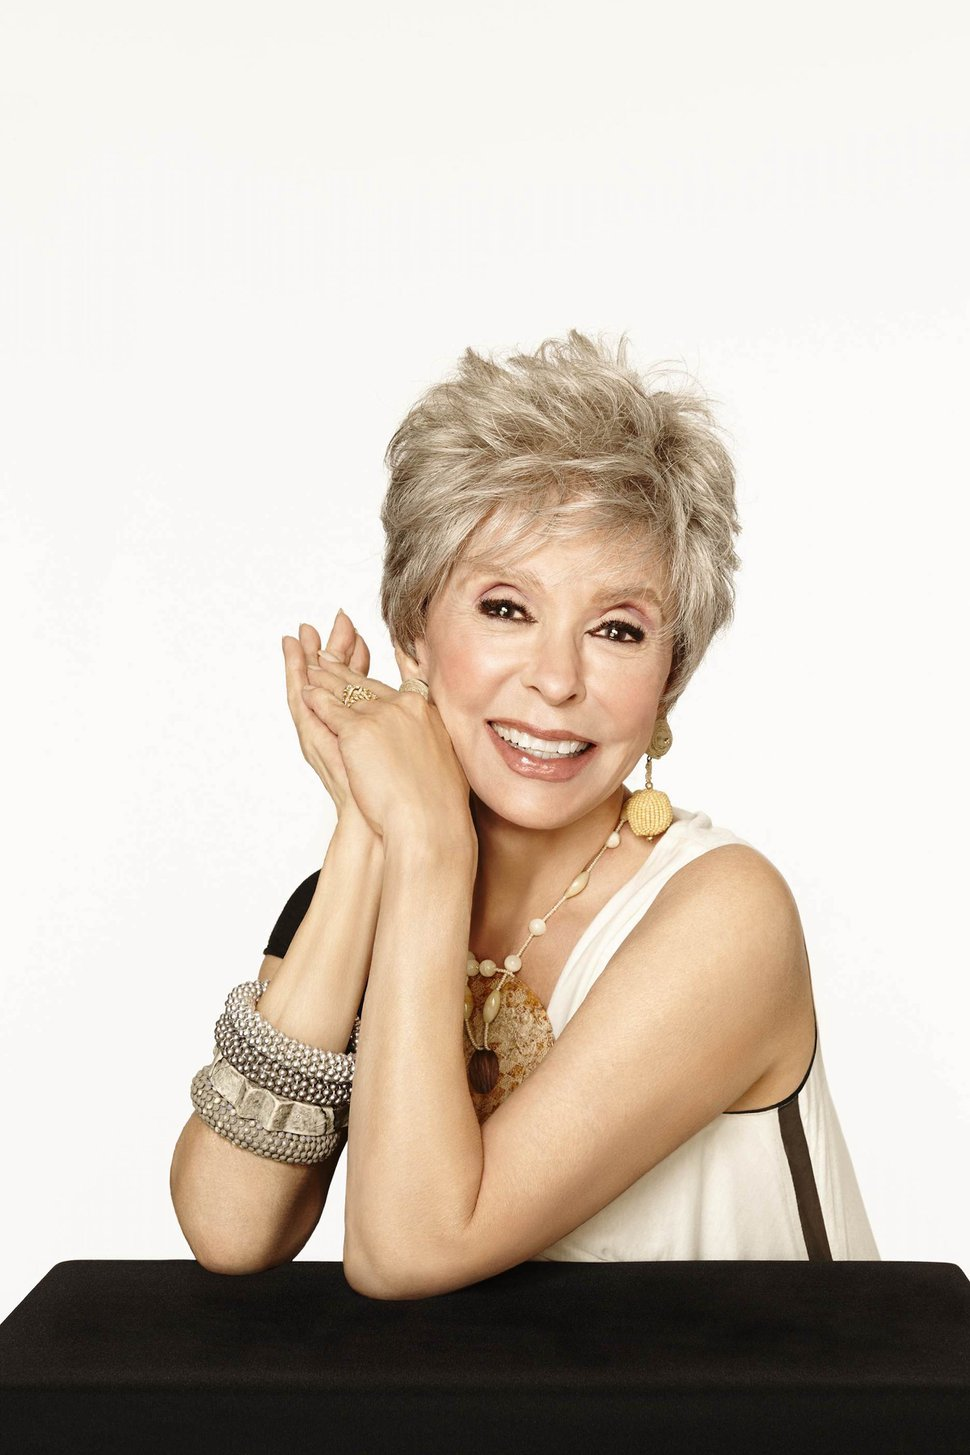 | Courtesy photo Rita Moreno will emcee and perform at the Eccles Theater's Premier Performance on Oct. 21.